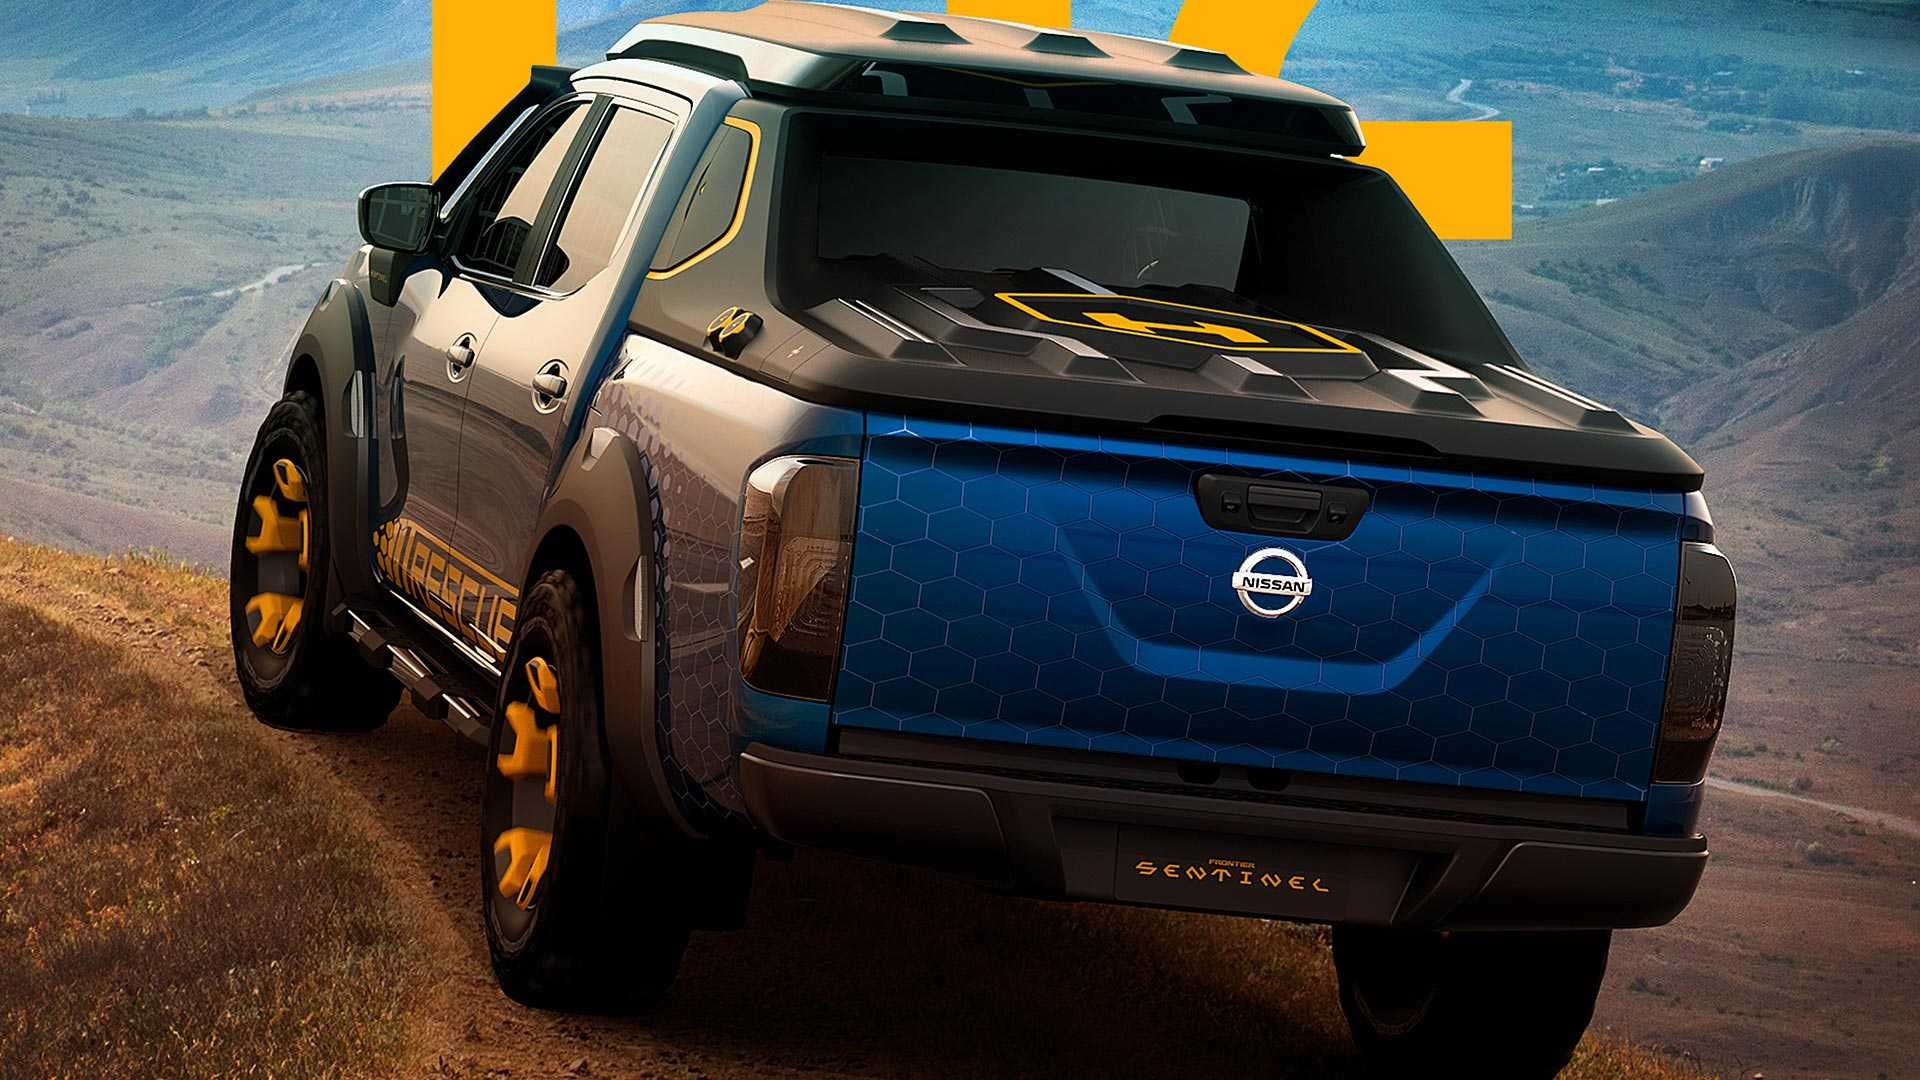 nissan-frontier-sentinel-concept (19)